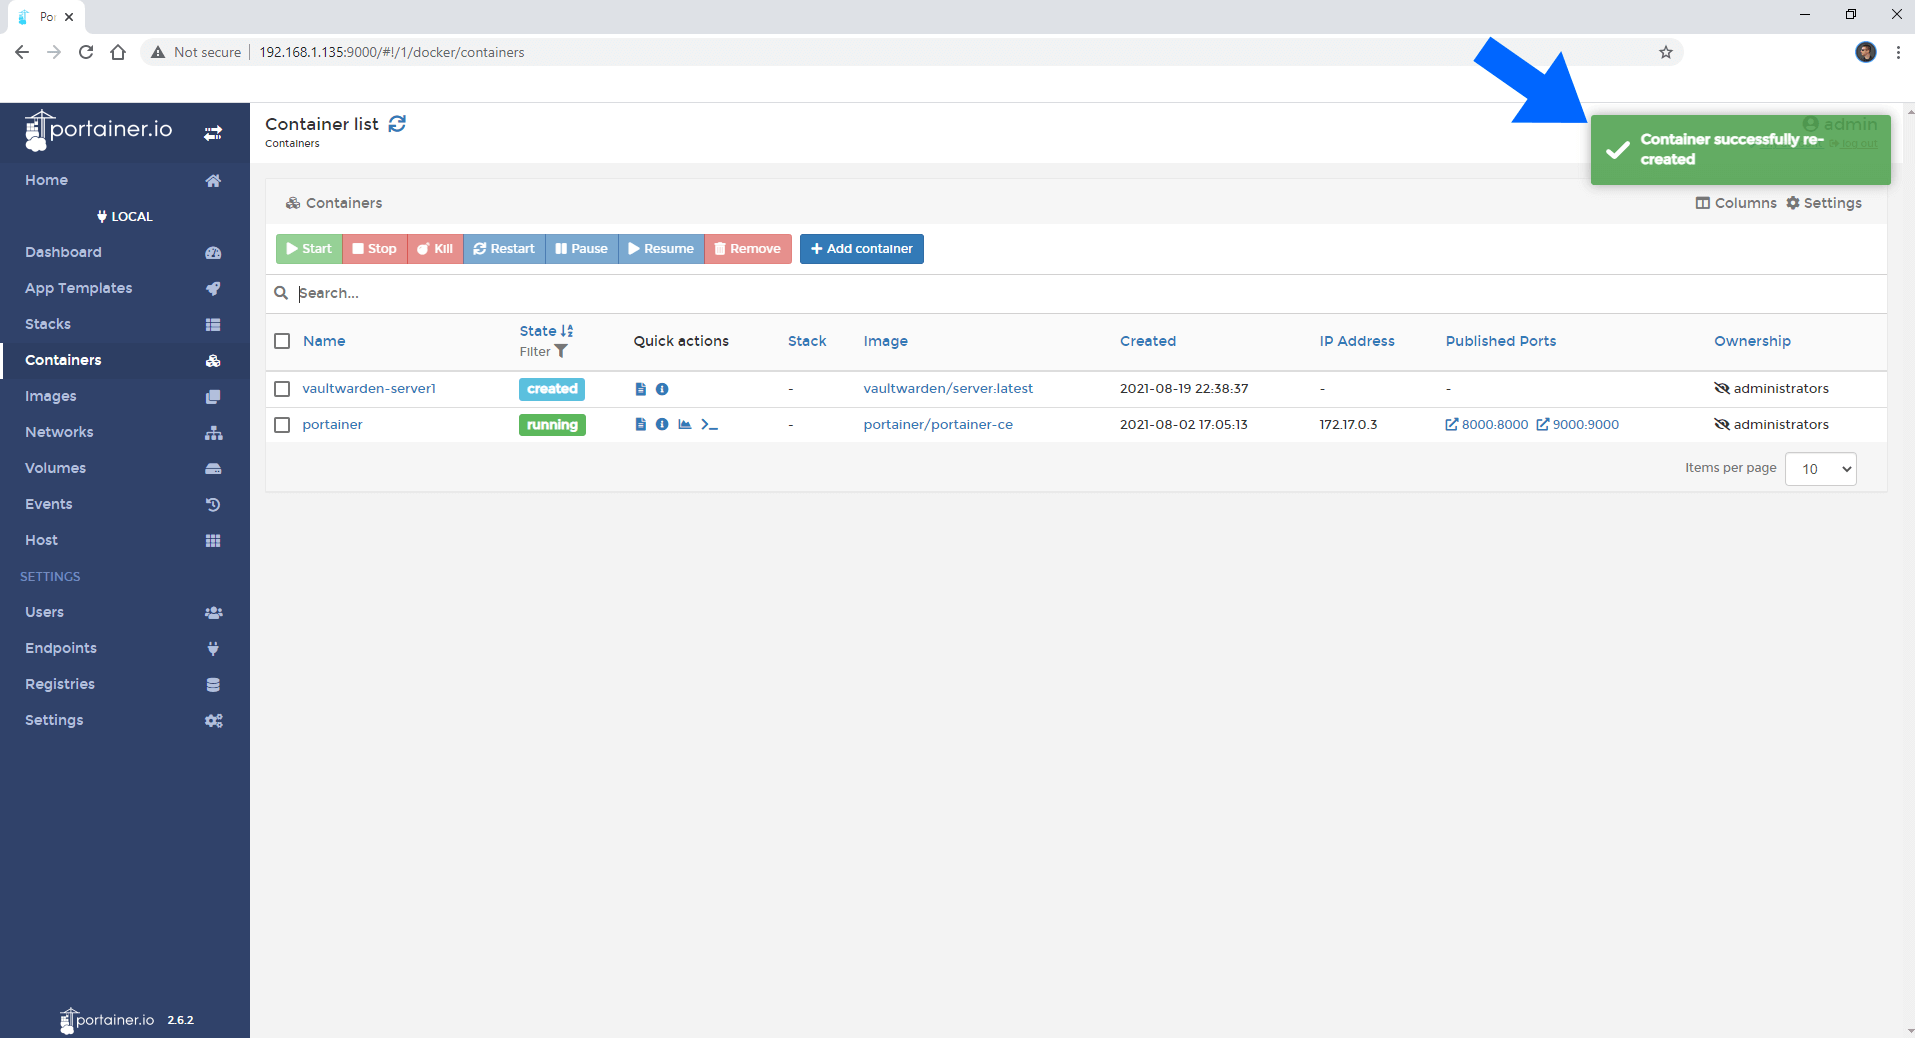 Synology update docker container using Portainer 5